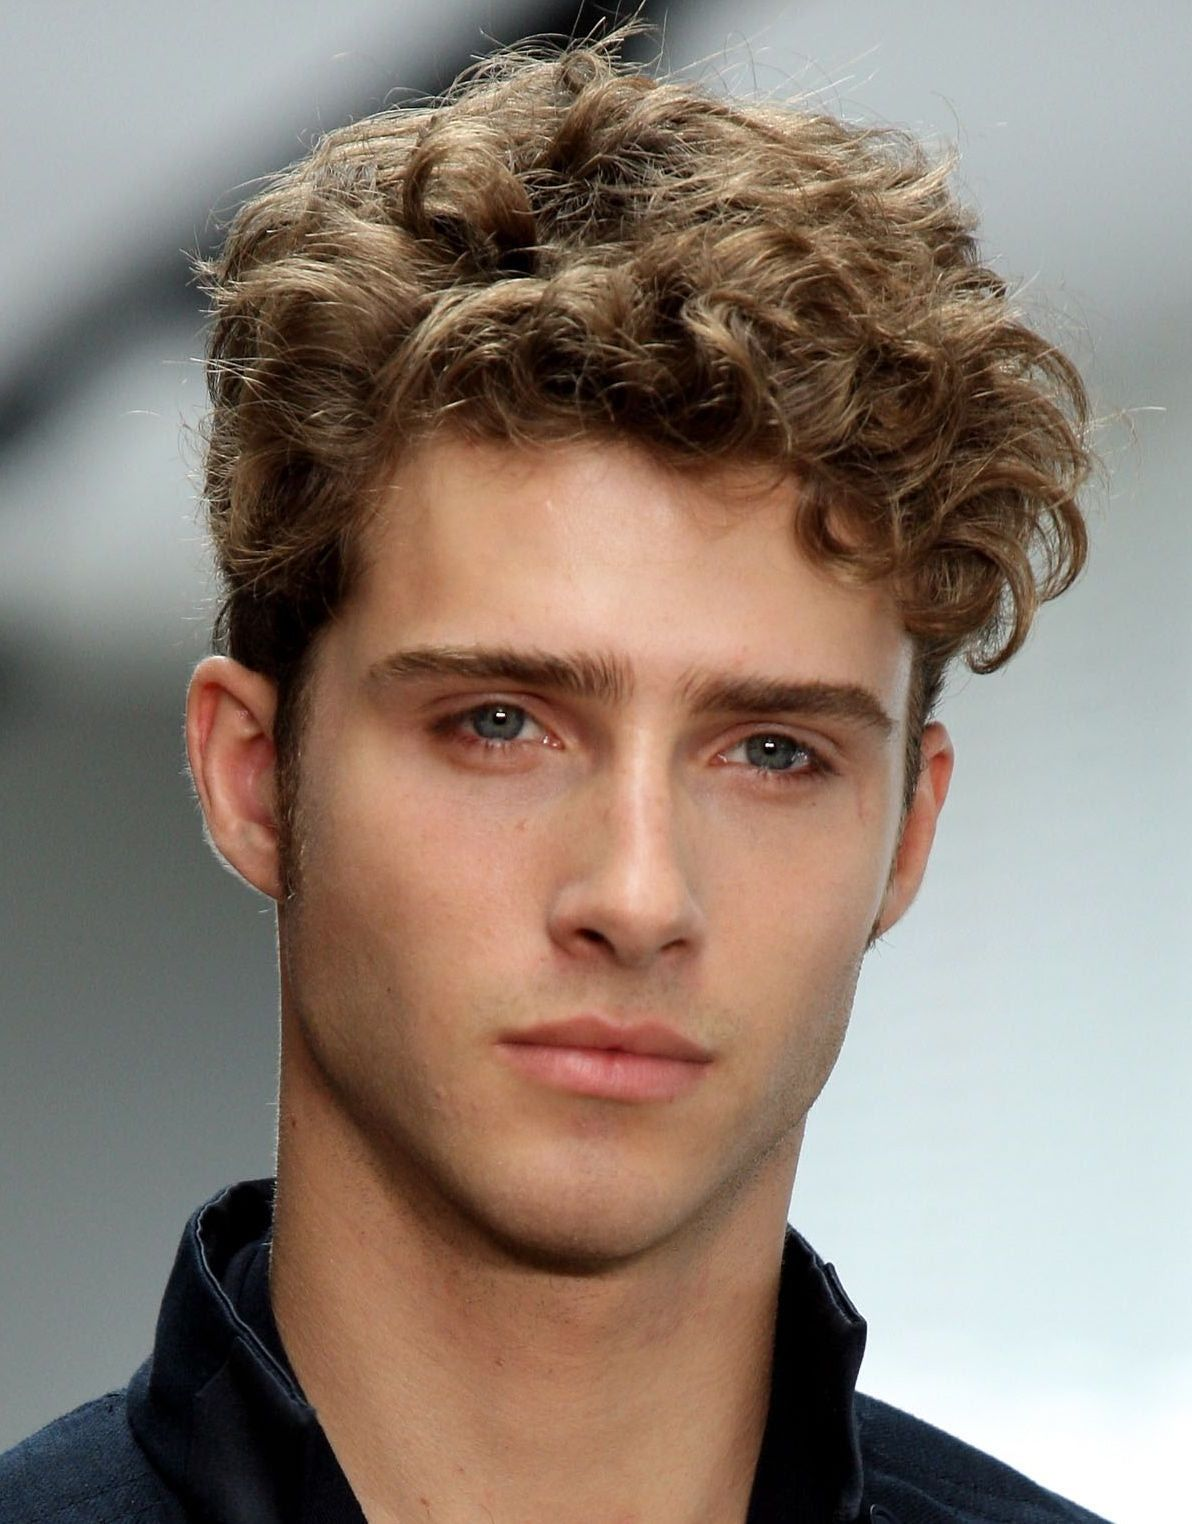 Surfer Hairstyles For Men Image For New Haircuts For Men Hairstyles Hd 689 Hair